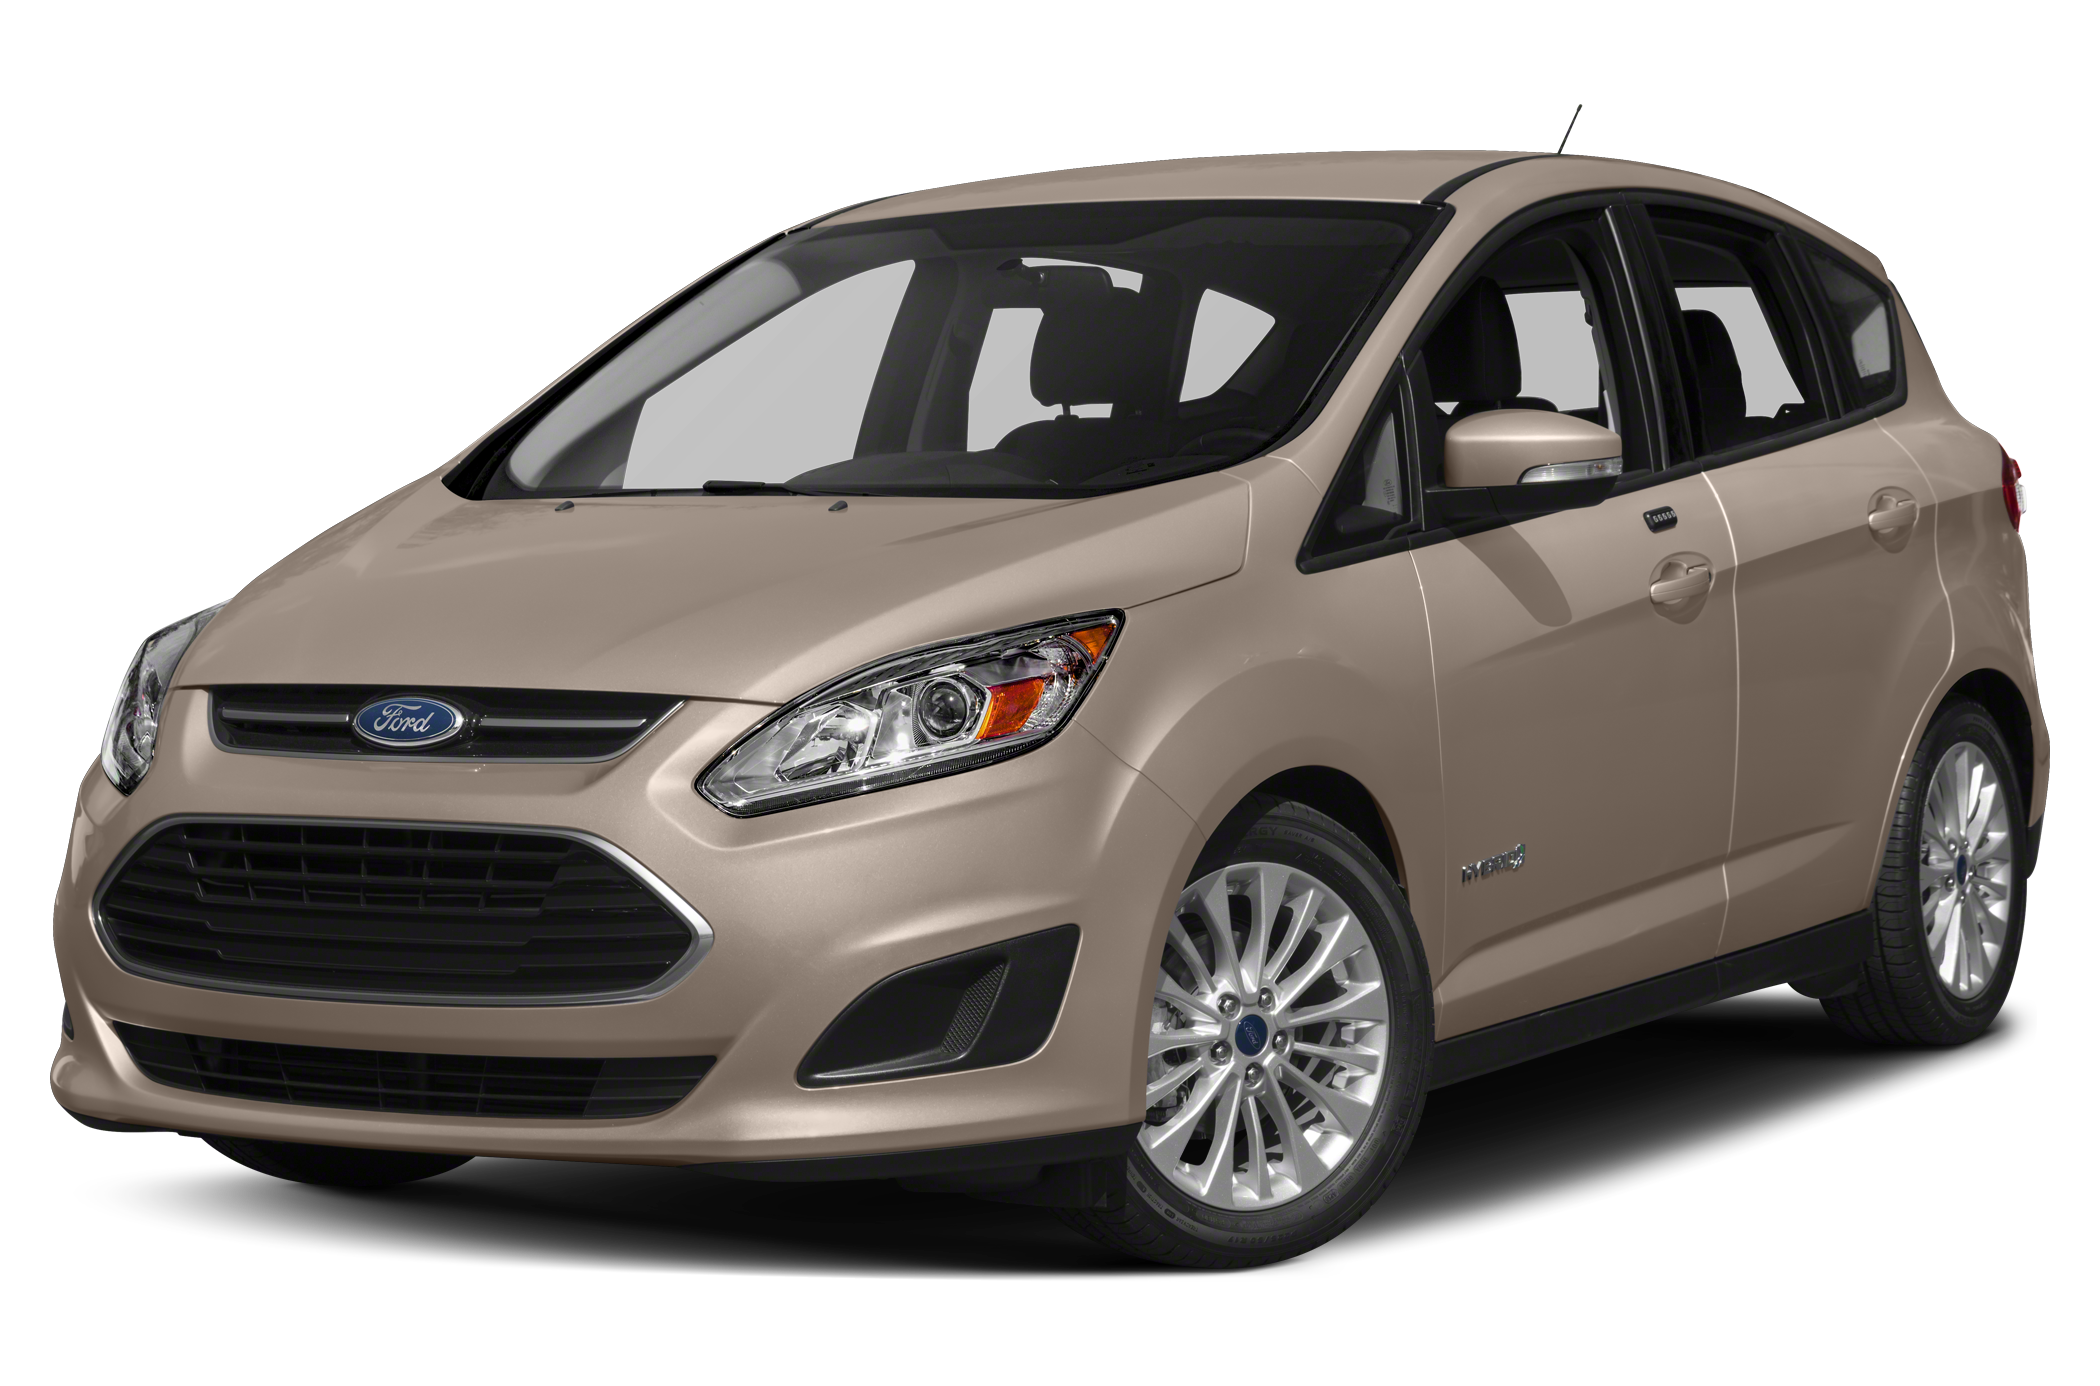 pare Ford C max hybrid to Chevrolet Volt